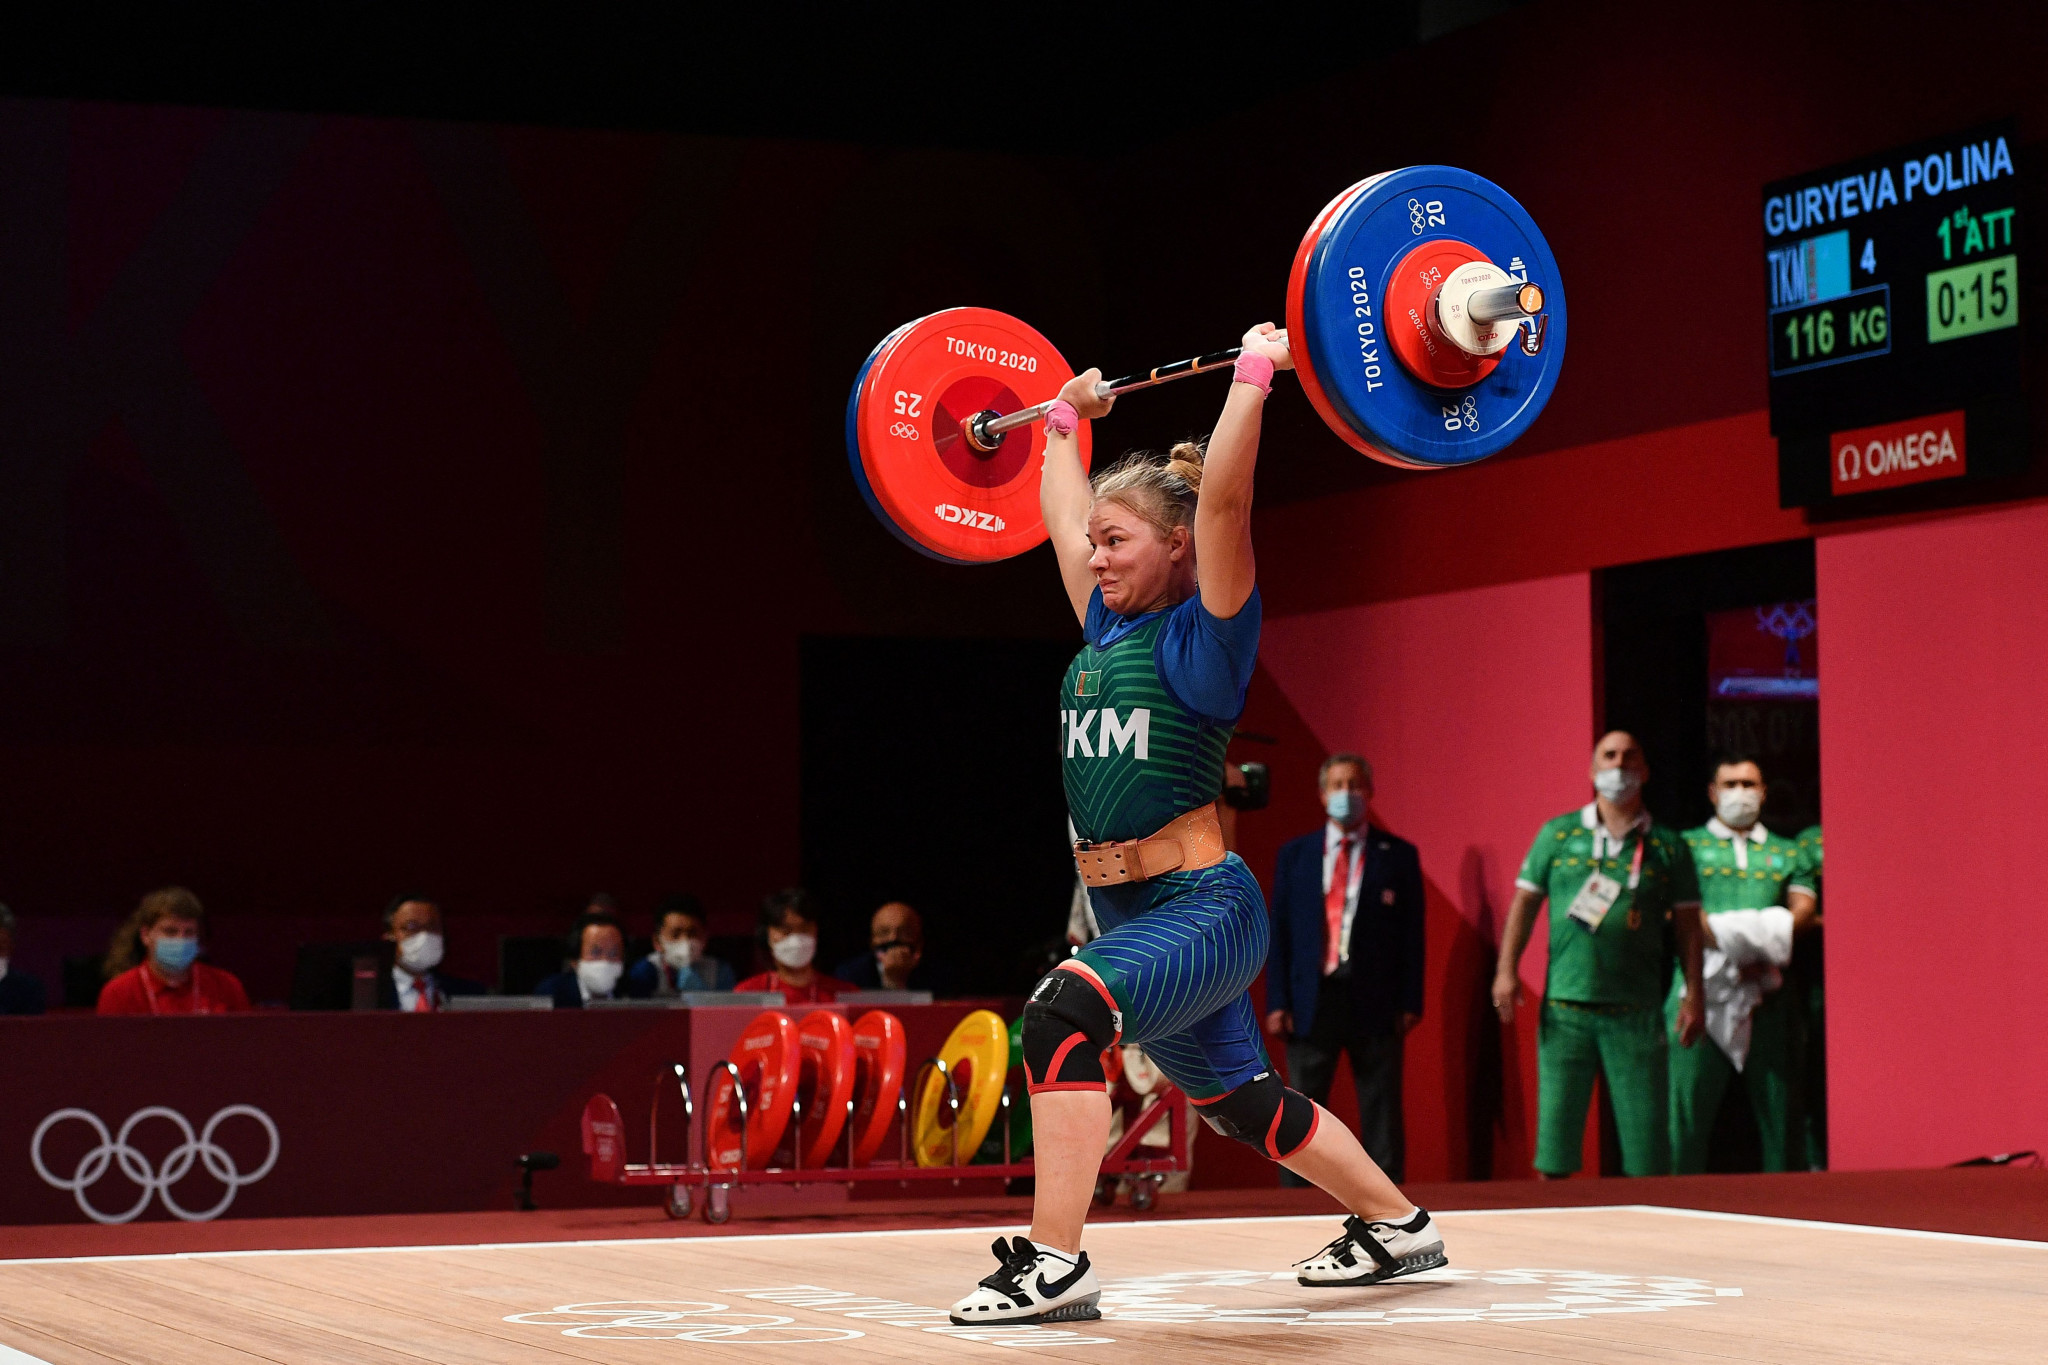 Polina Guryeva won Turkmenistan's first-ever Olympic medal - women's 59kg bronze ©Getty Images